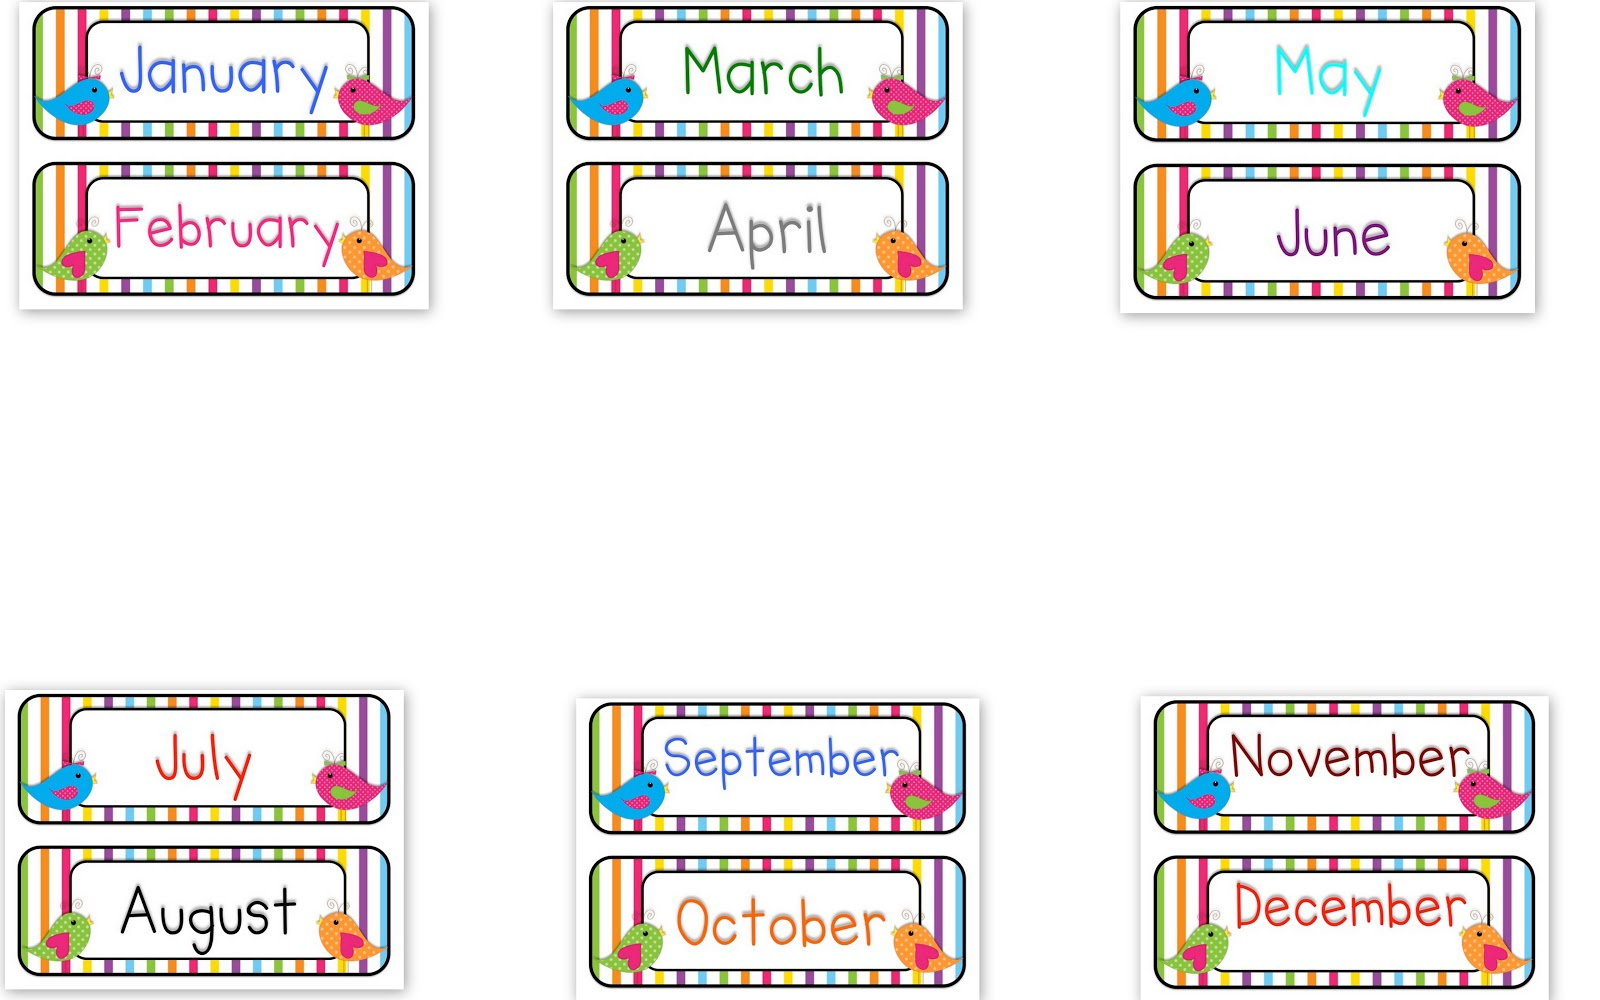 Printables Months Of The Year (106+ Images In Collection) Page 2